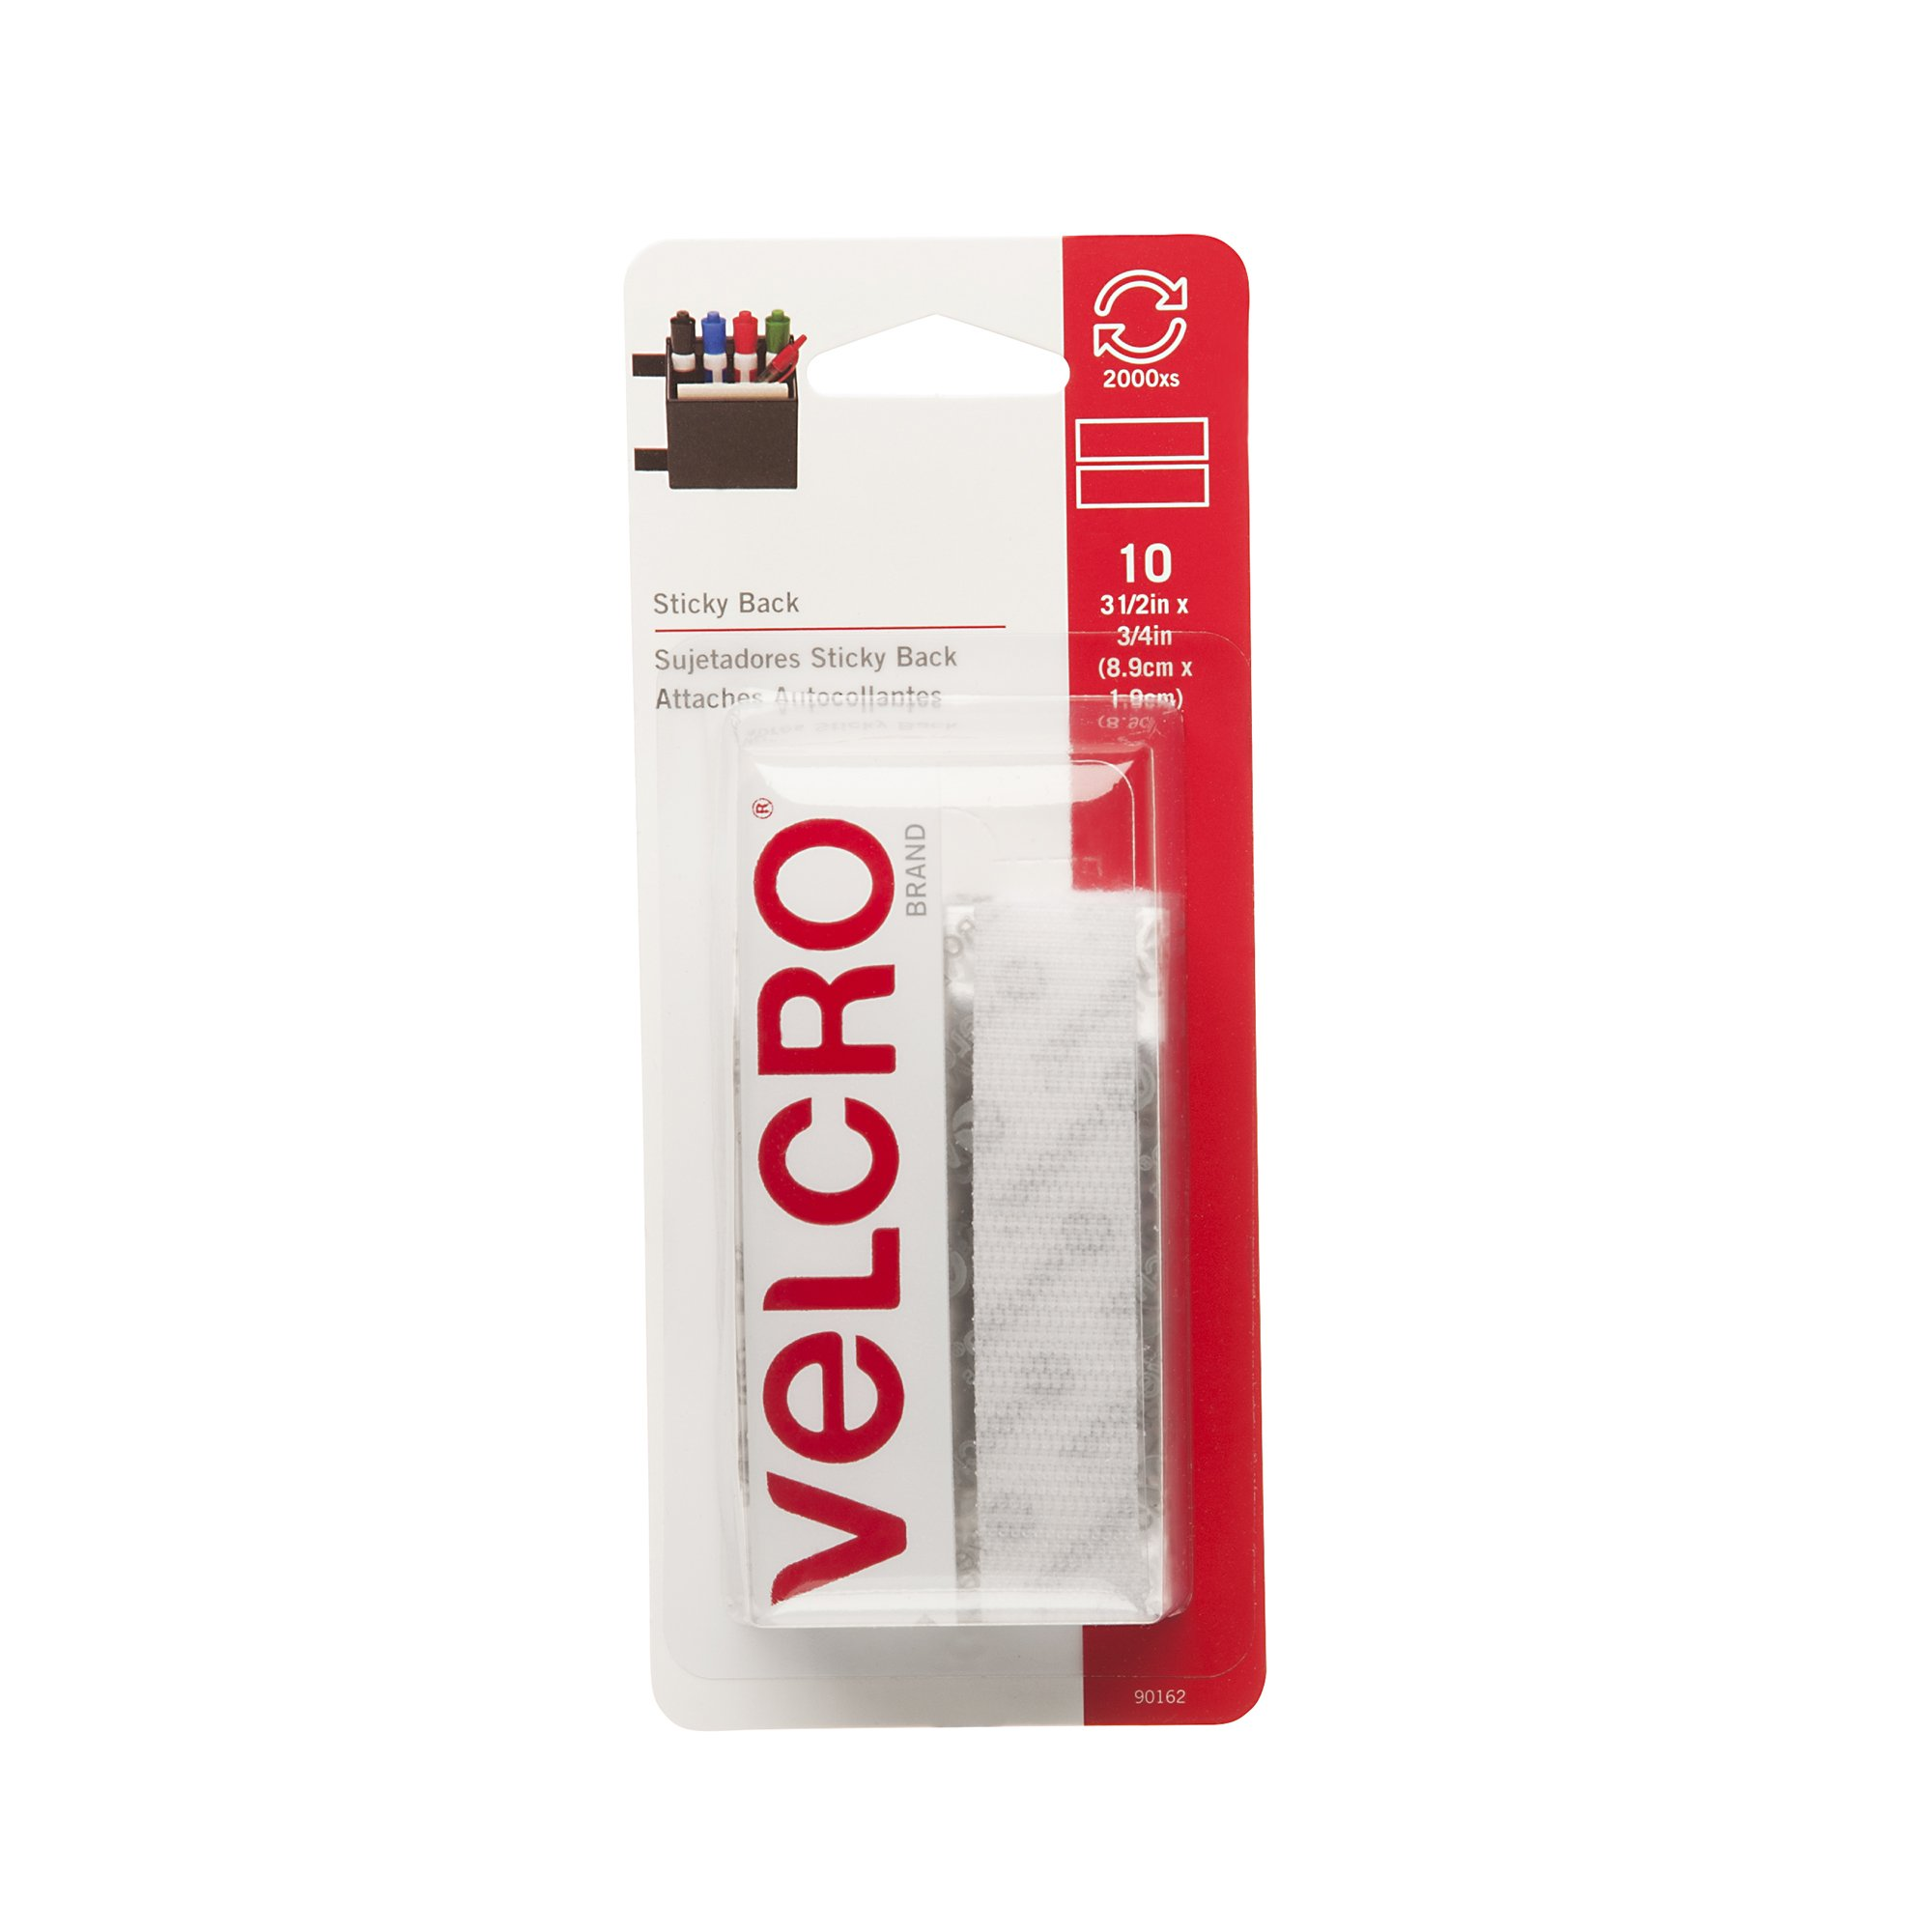 VELCRO Brand - Sticky Back Hook and Loop Fasteners | Perfect for Home or Office | 3 1/2in x 3/4in Strips | Pack of 10 | White